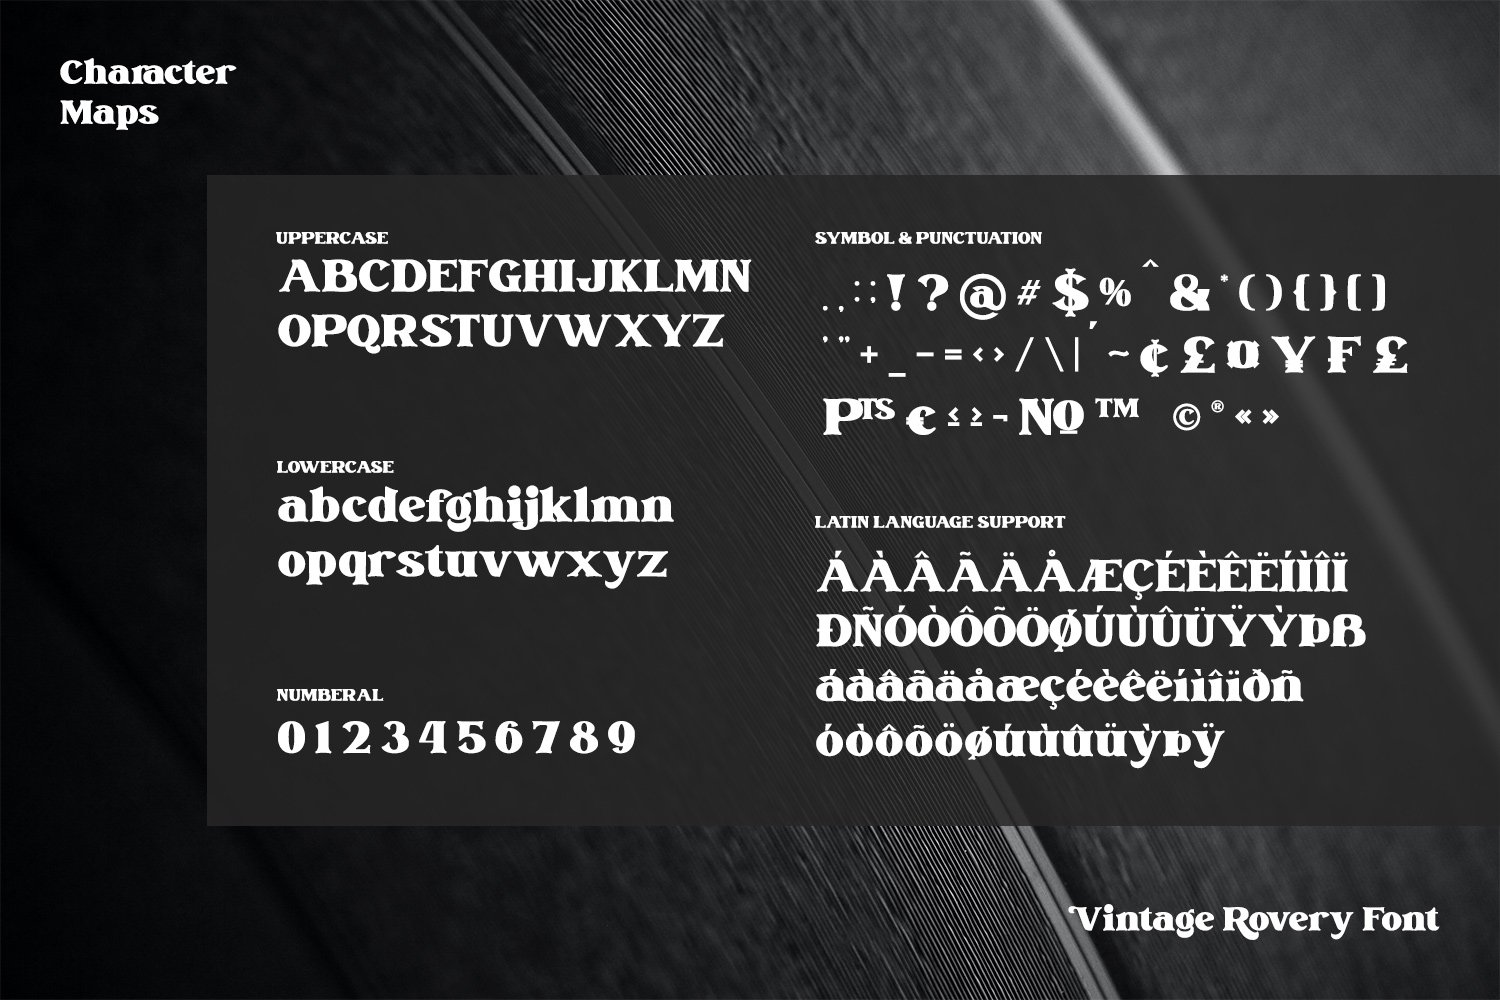 Vintage Rovery Serif Font -3